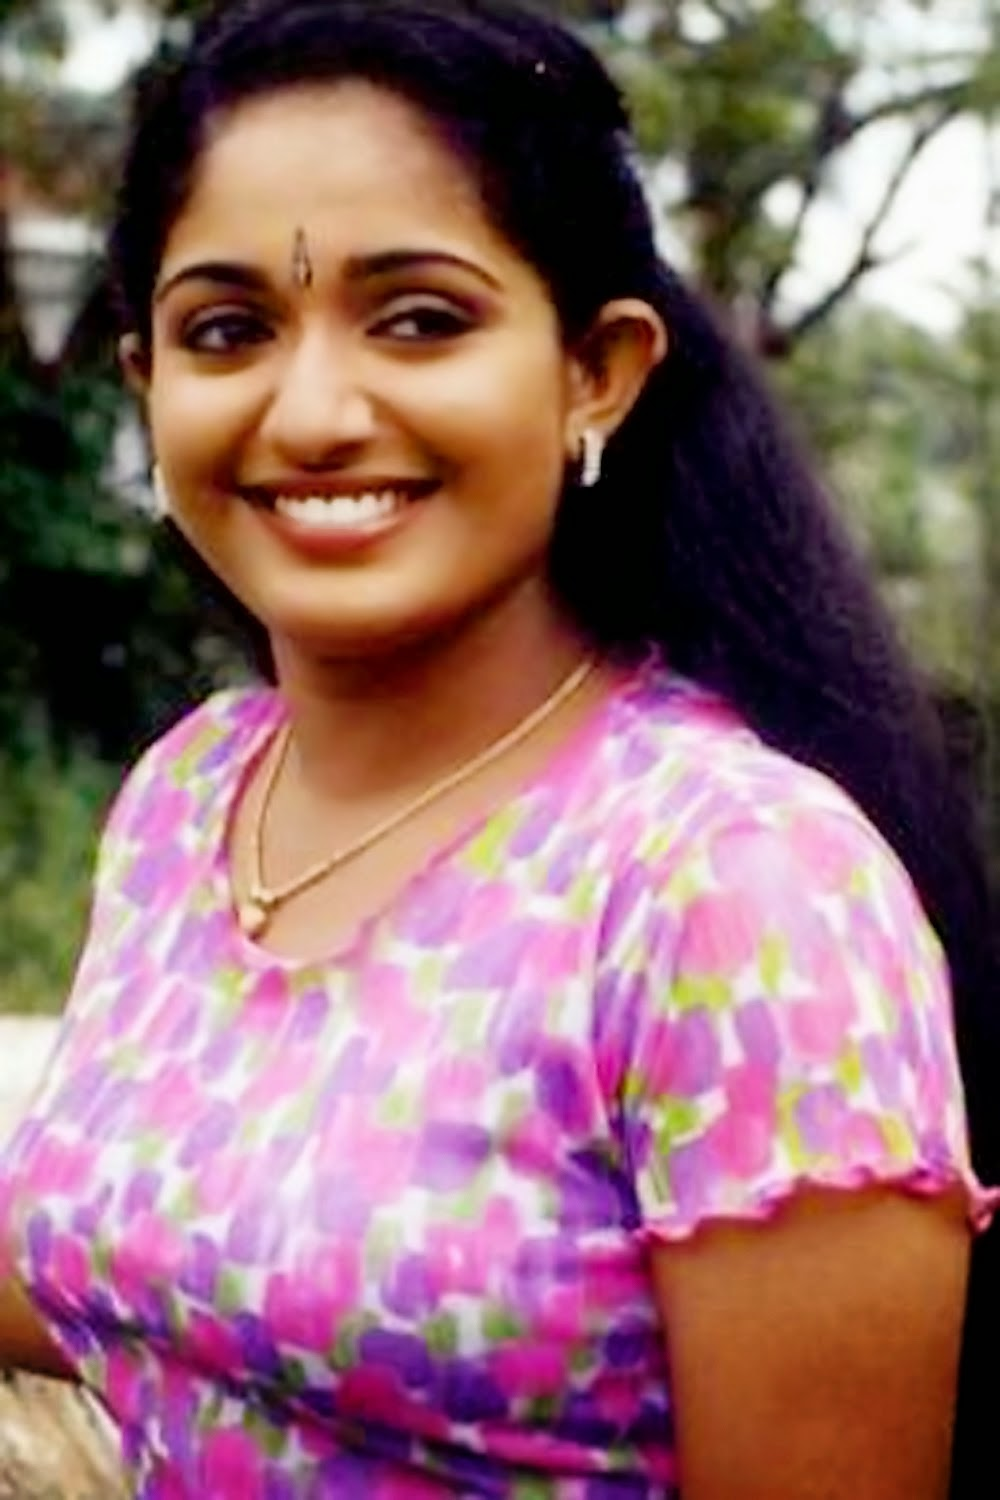 from Sullivan kavya madhavan sex hd images download free